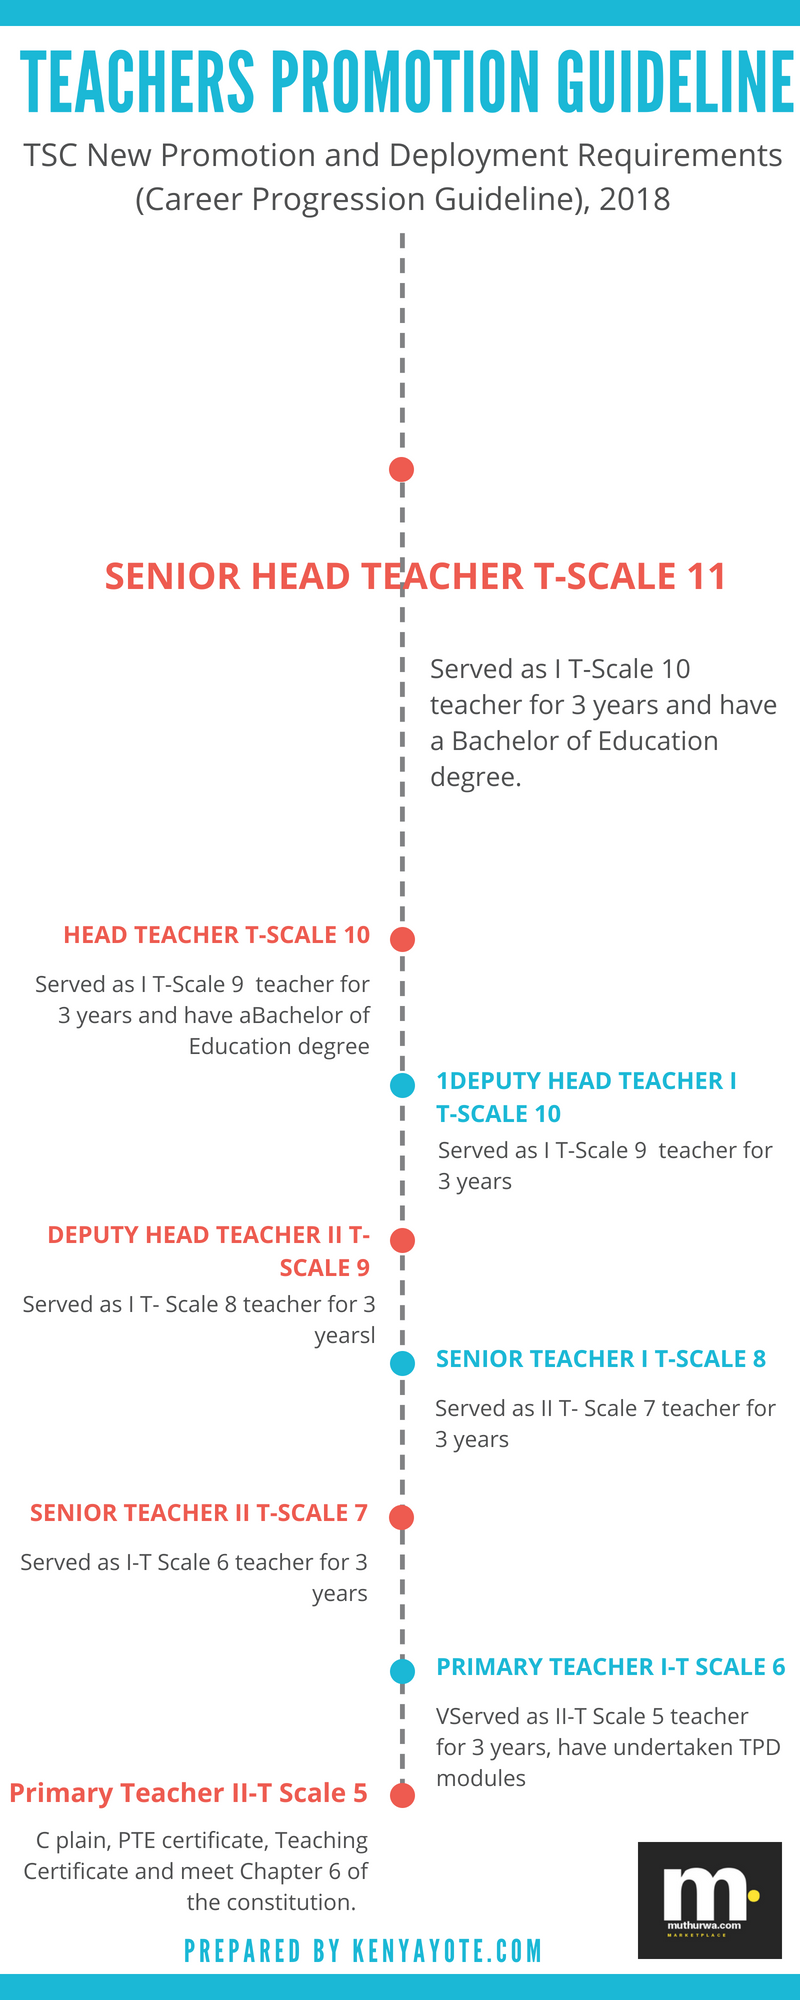 TSC primary teachers promotion guideline (infographic)